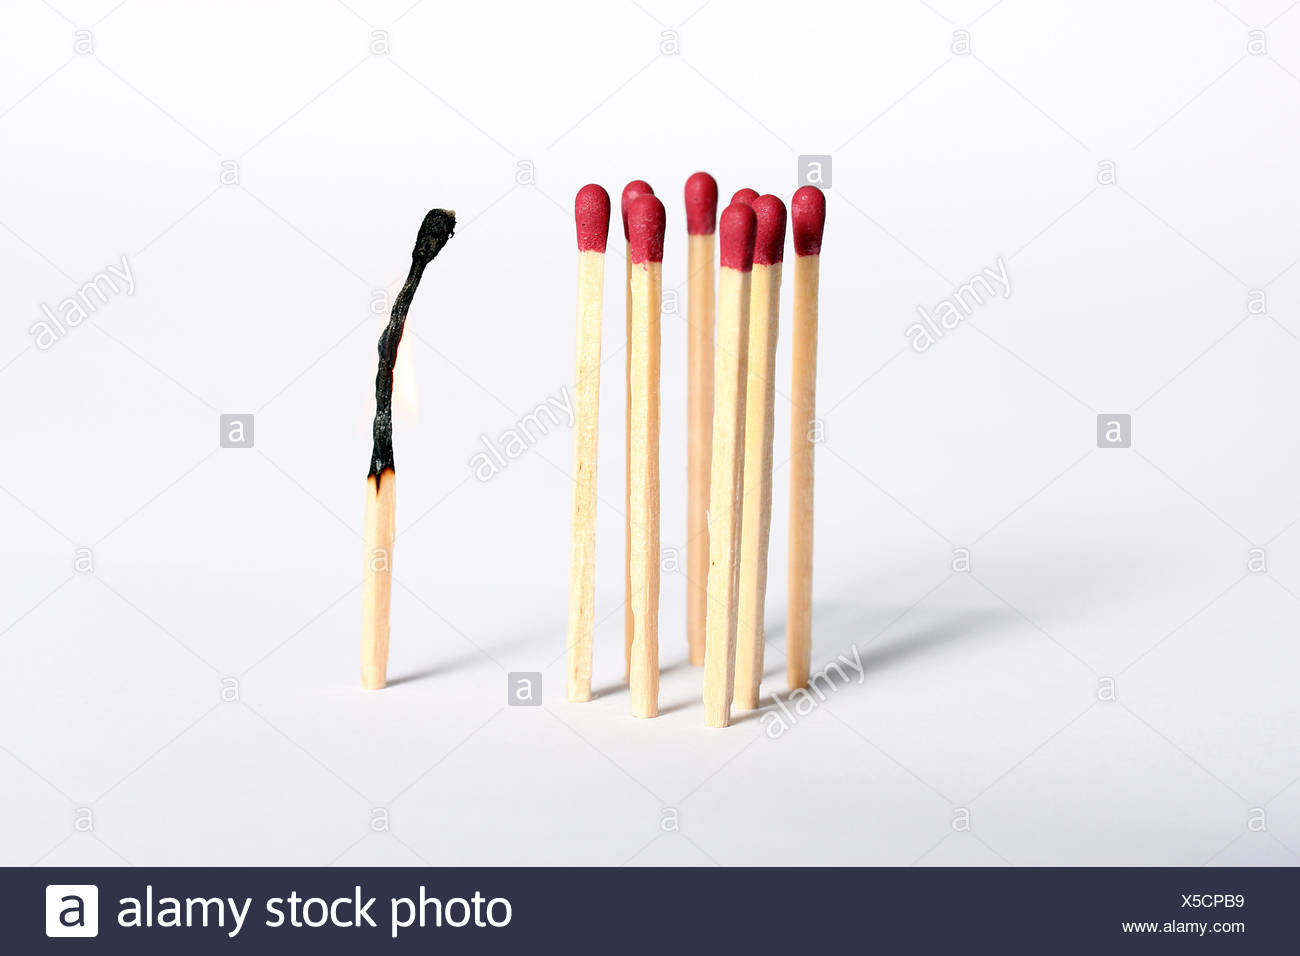 matchstick,outsider - Stock Image